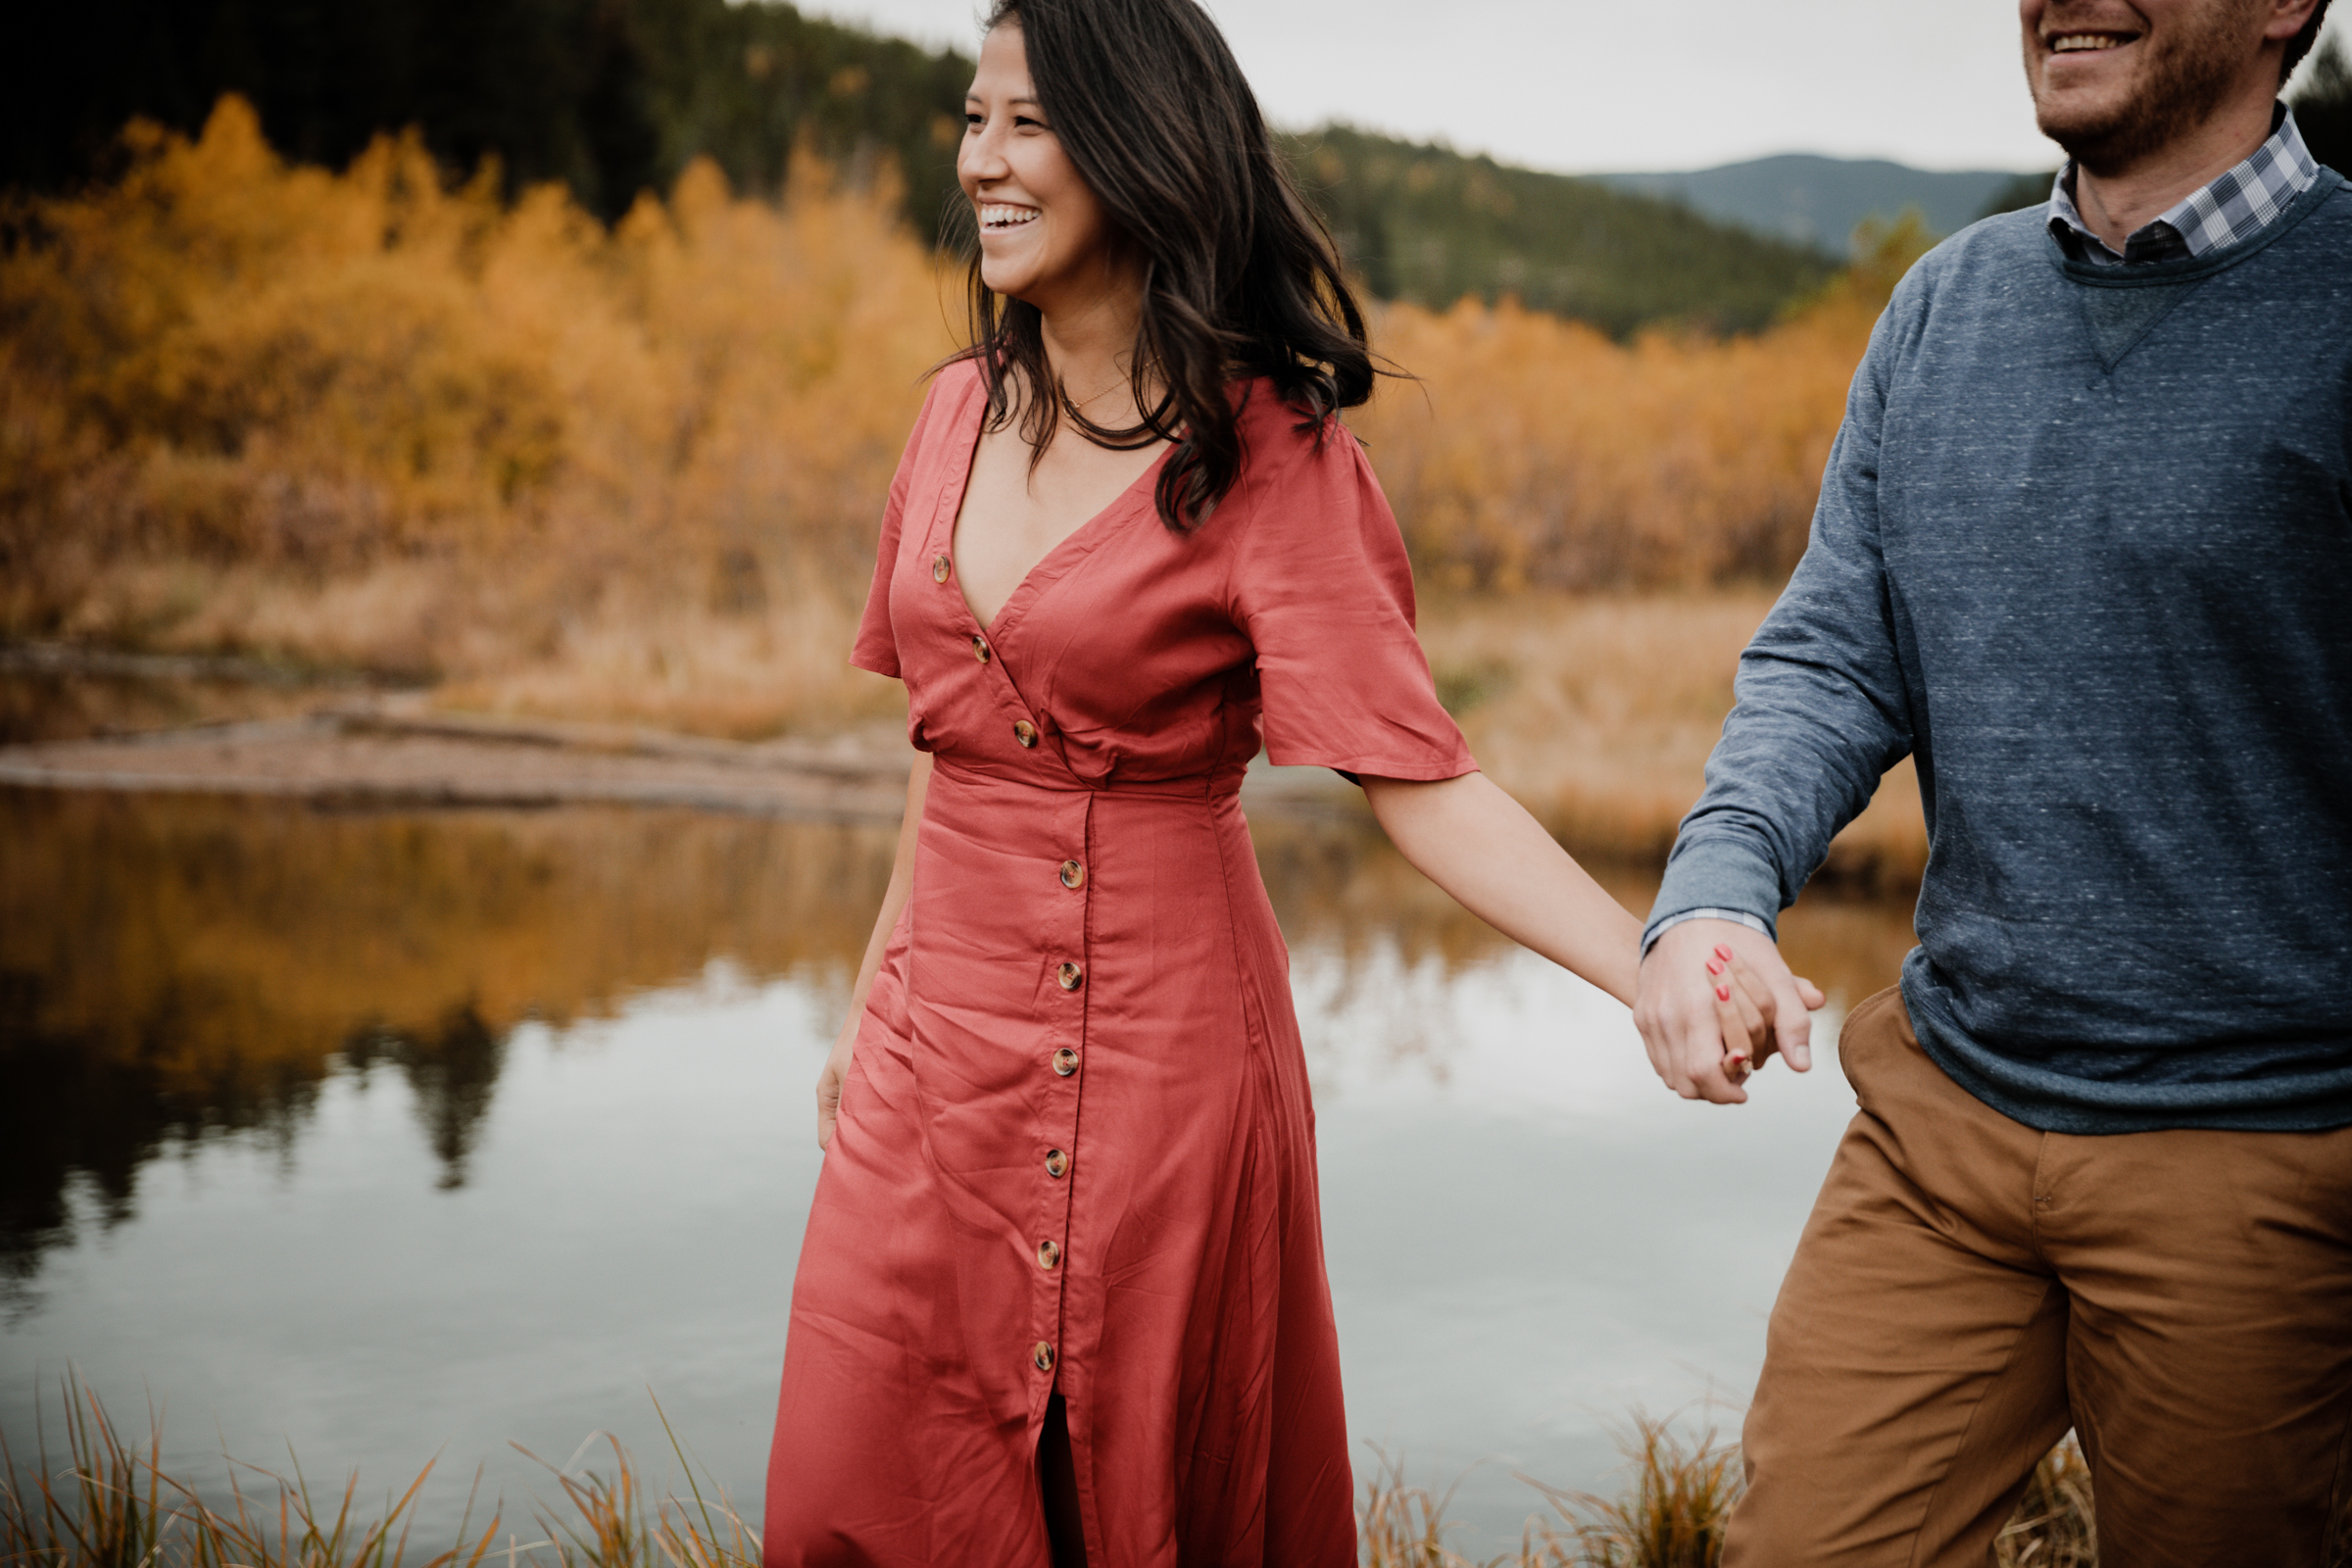 Mandy+Mike.Engagement-couturecoloradosubmission-10.jpg